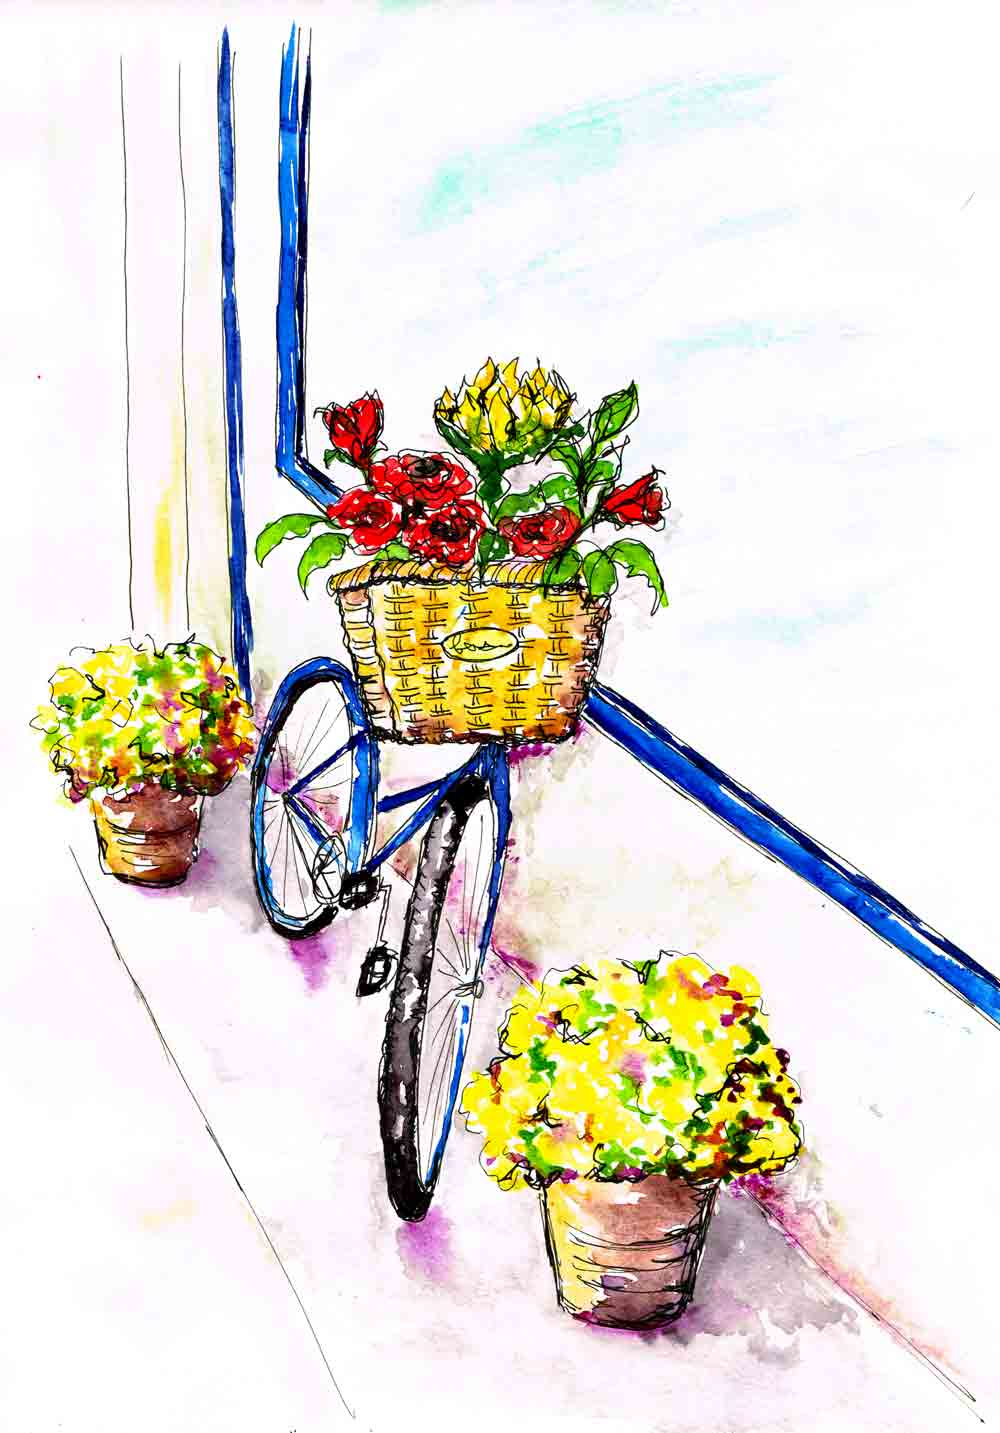 Blossoms-and-Bikes-6-tubs-of-daisies-kw.jpg